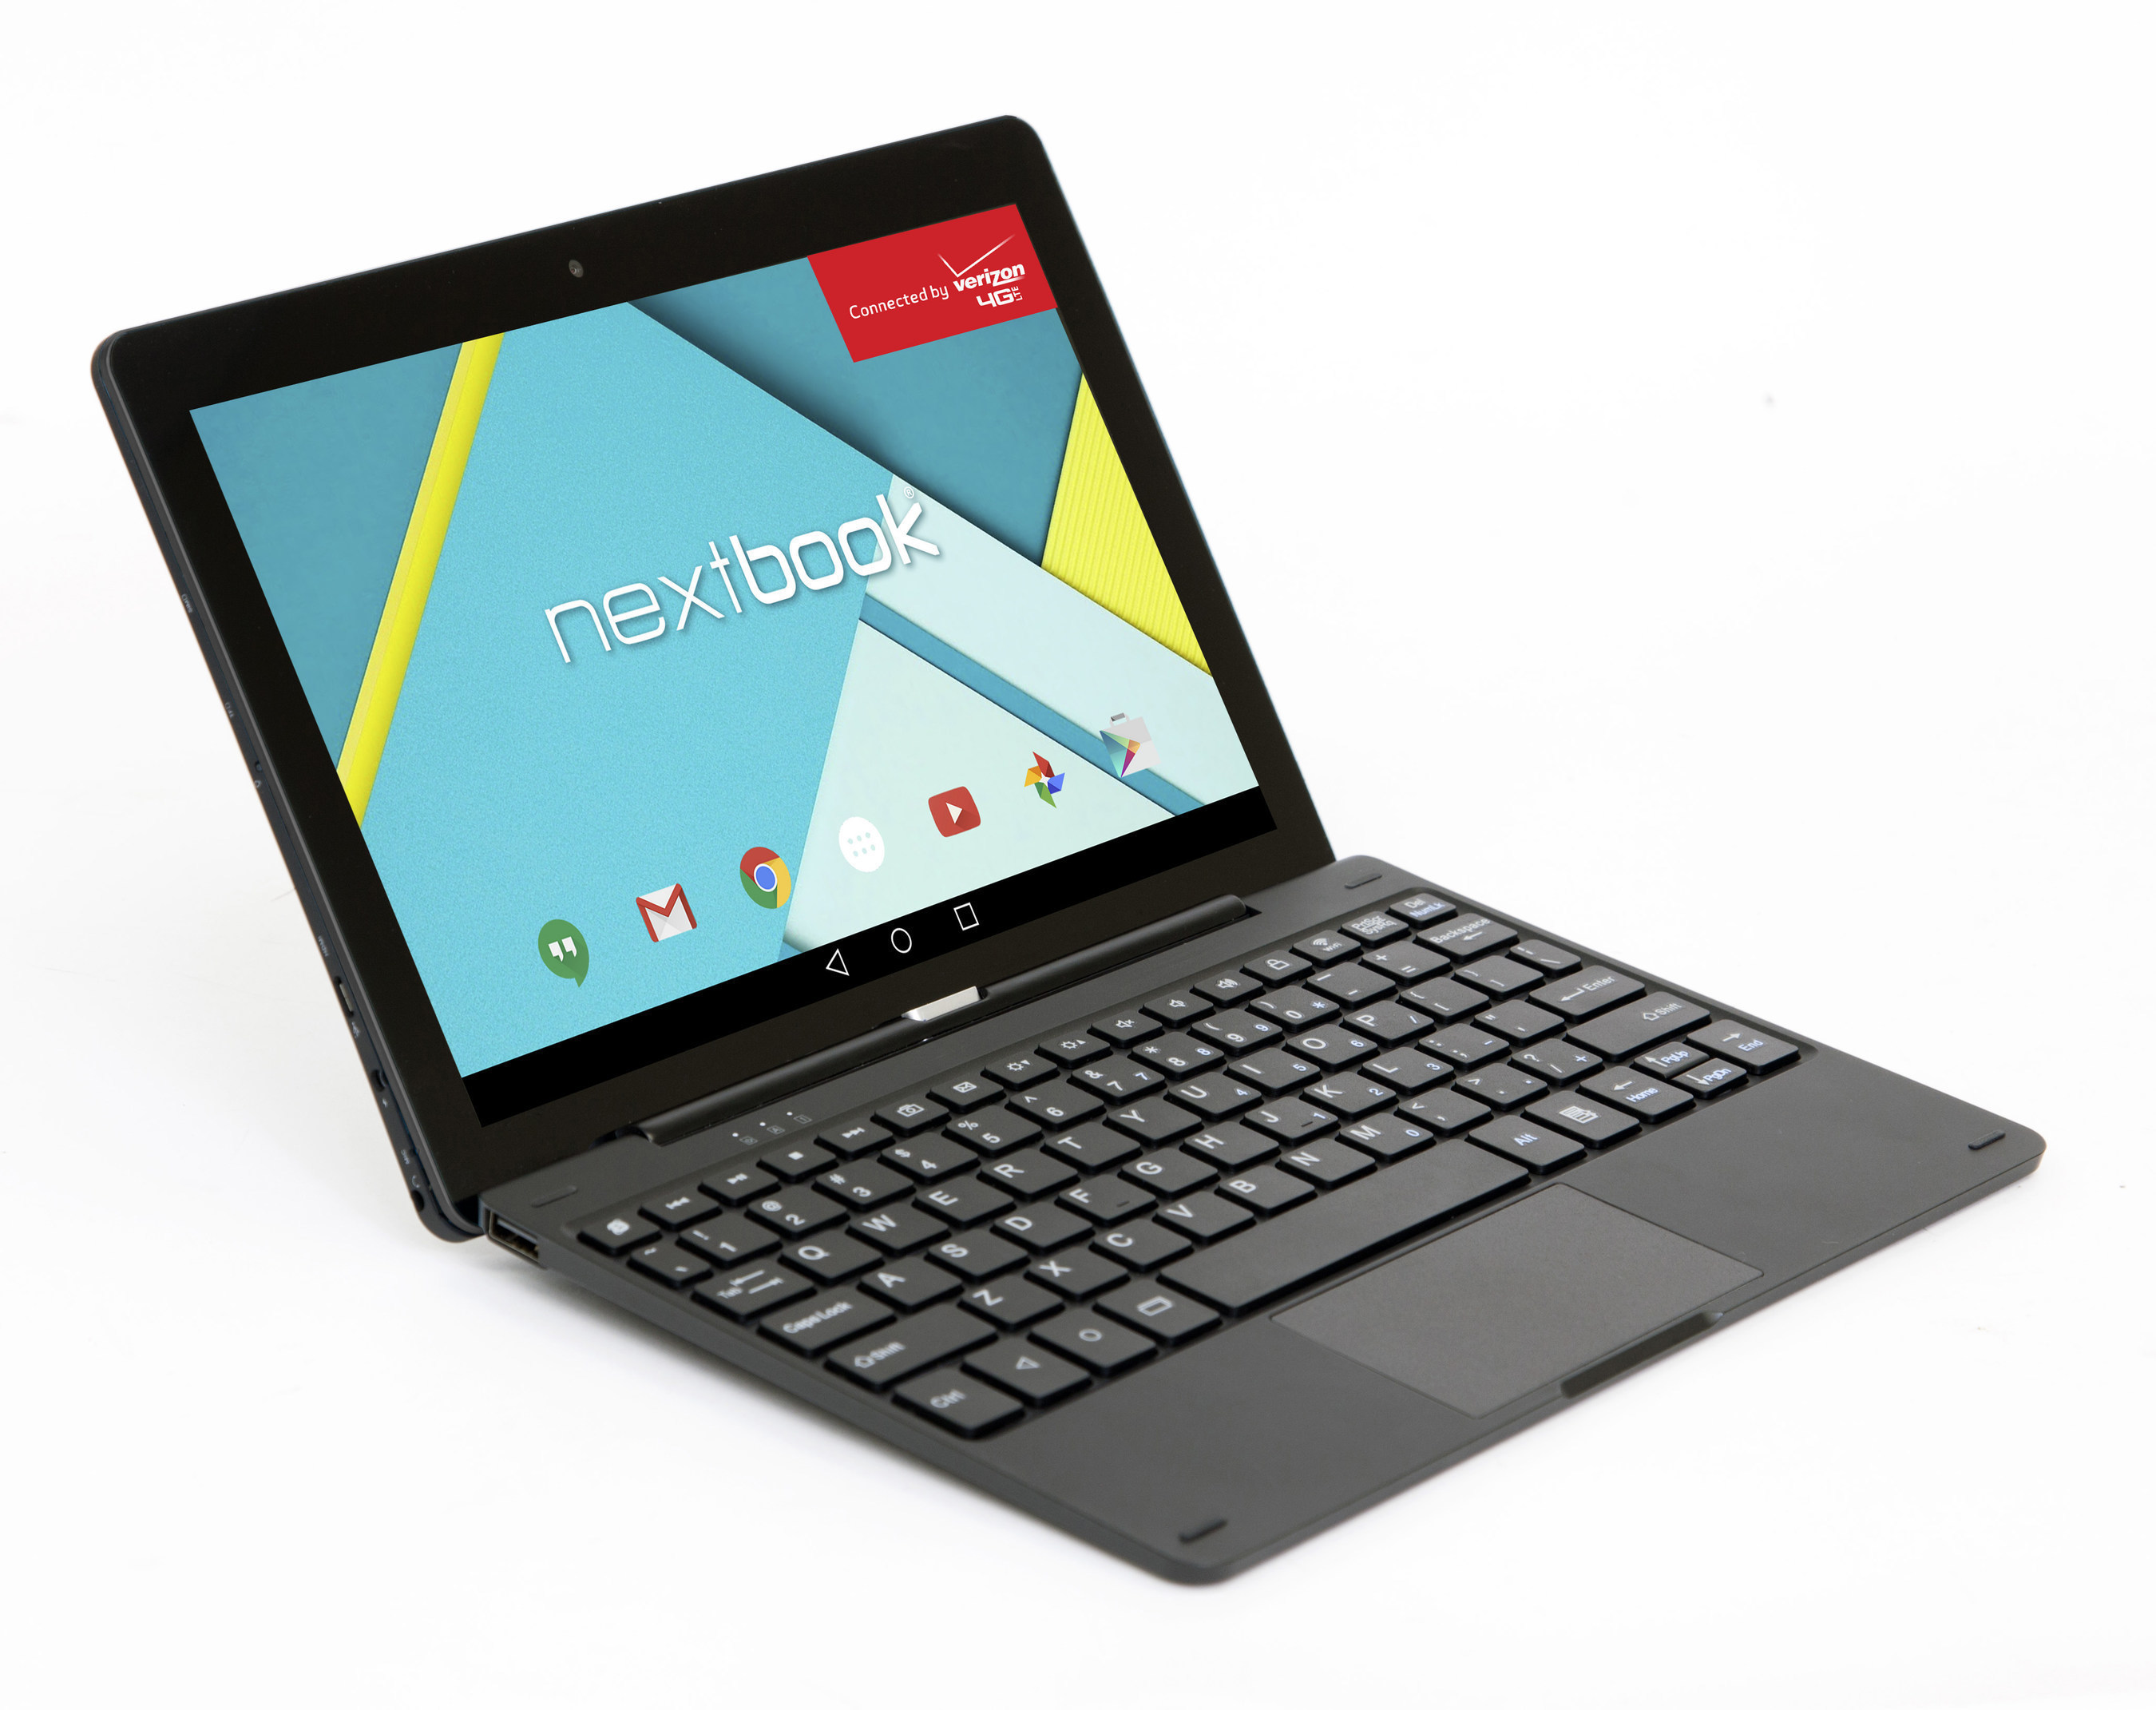 E FUN Announces First Nextbook Tablets with Verizon 4G LTE Connectivity